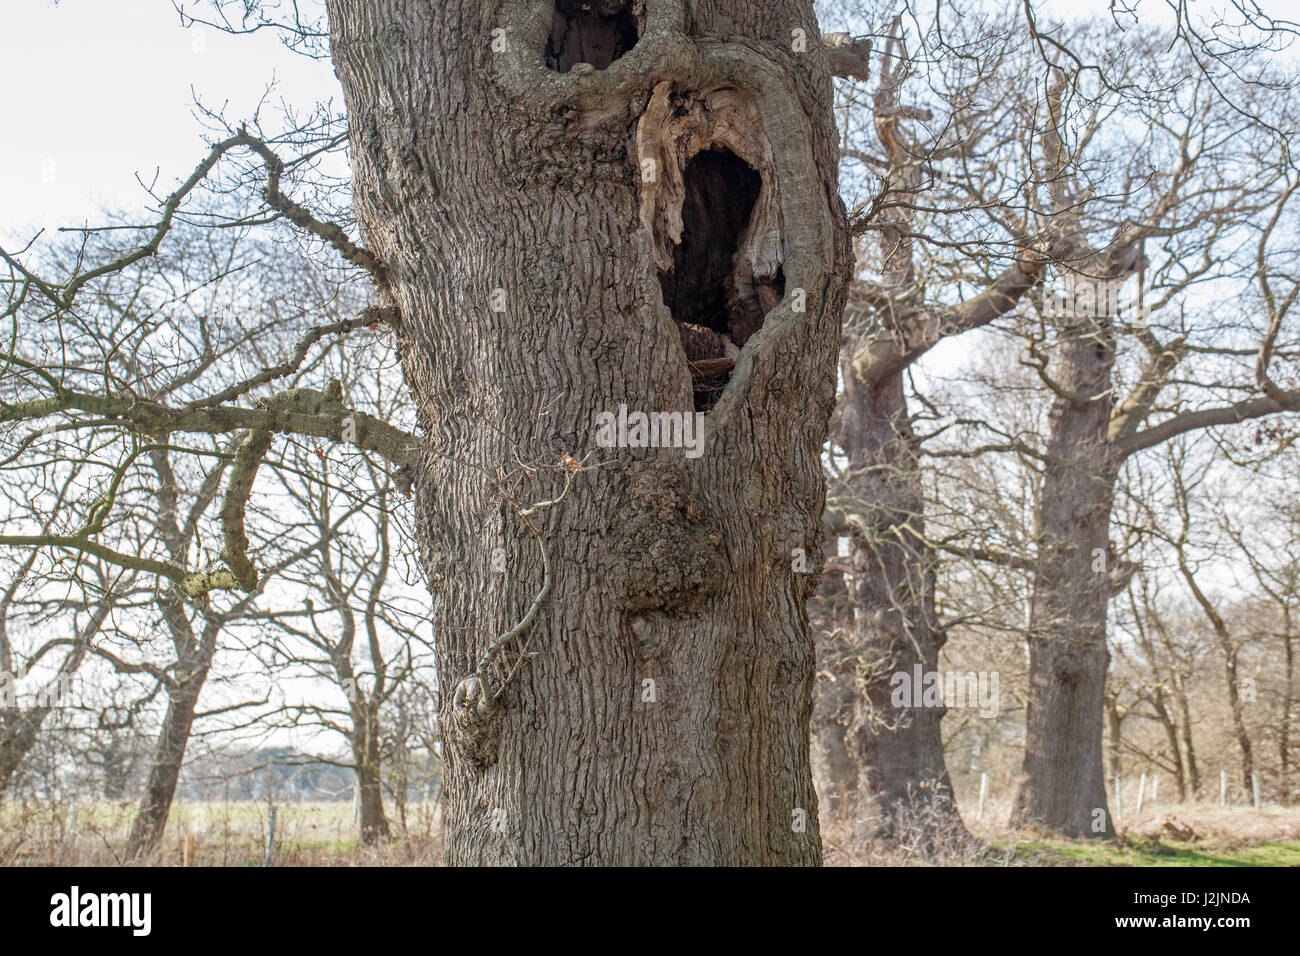 English Oak (Quercus robur). Elderly, senile tree with hollowed trunk, left standing, in English parkland. Norfolk. - Stock Image